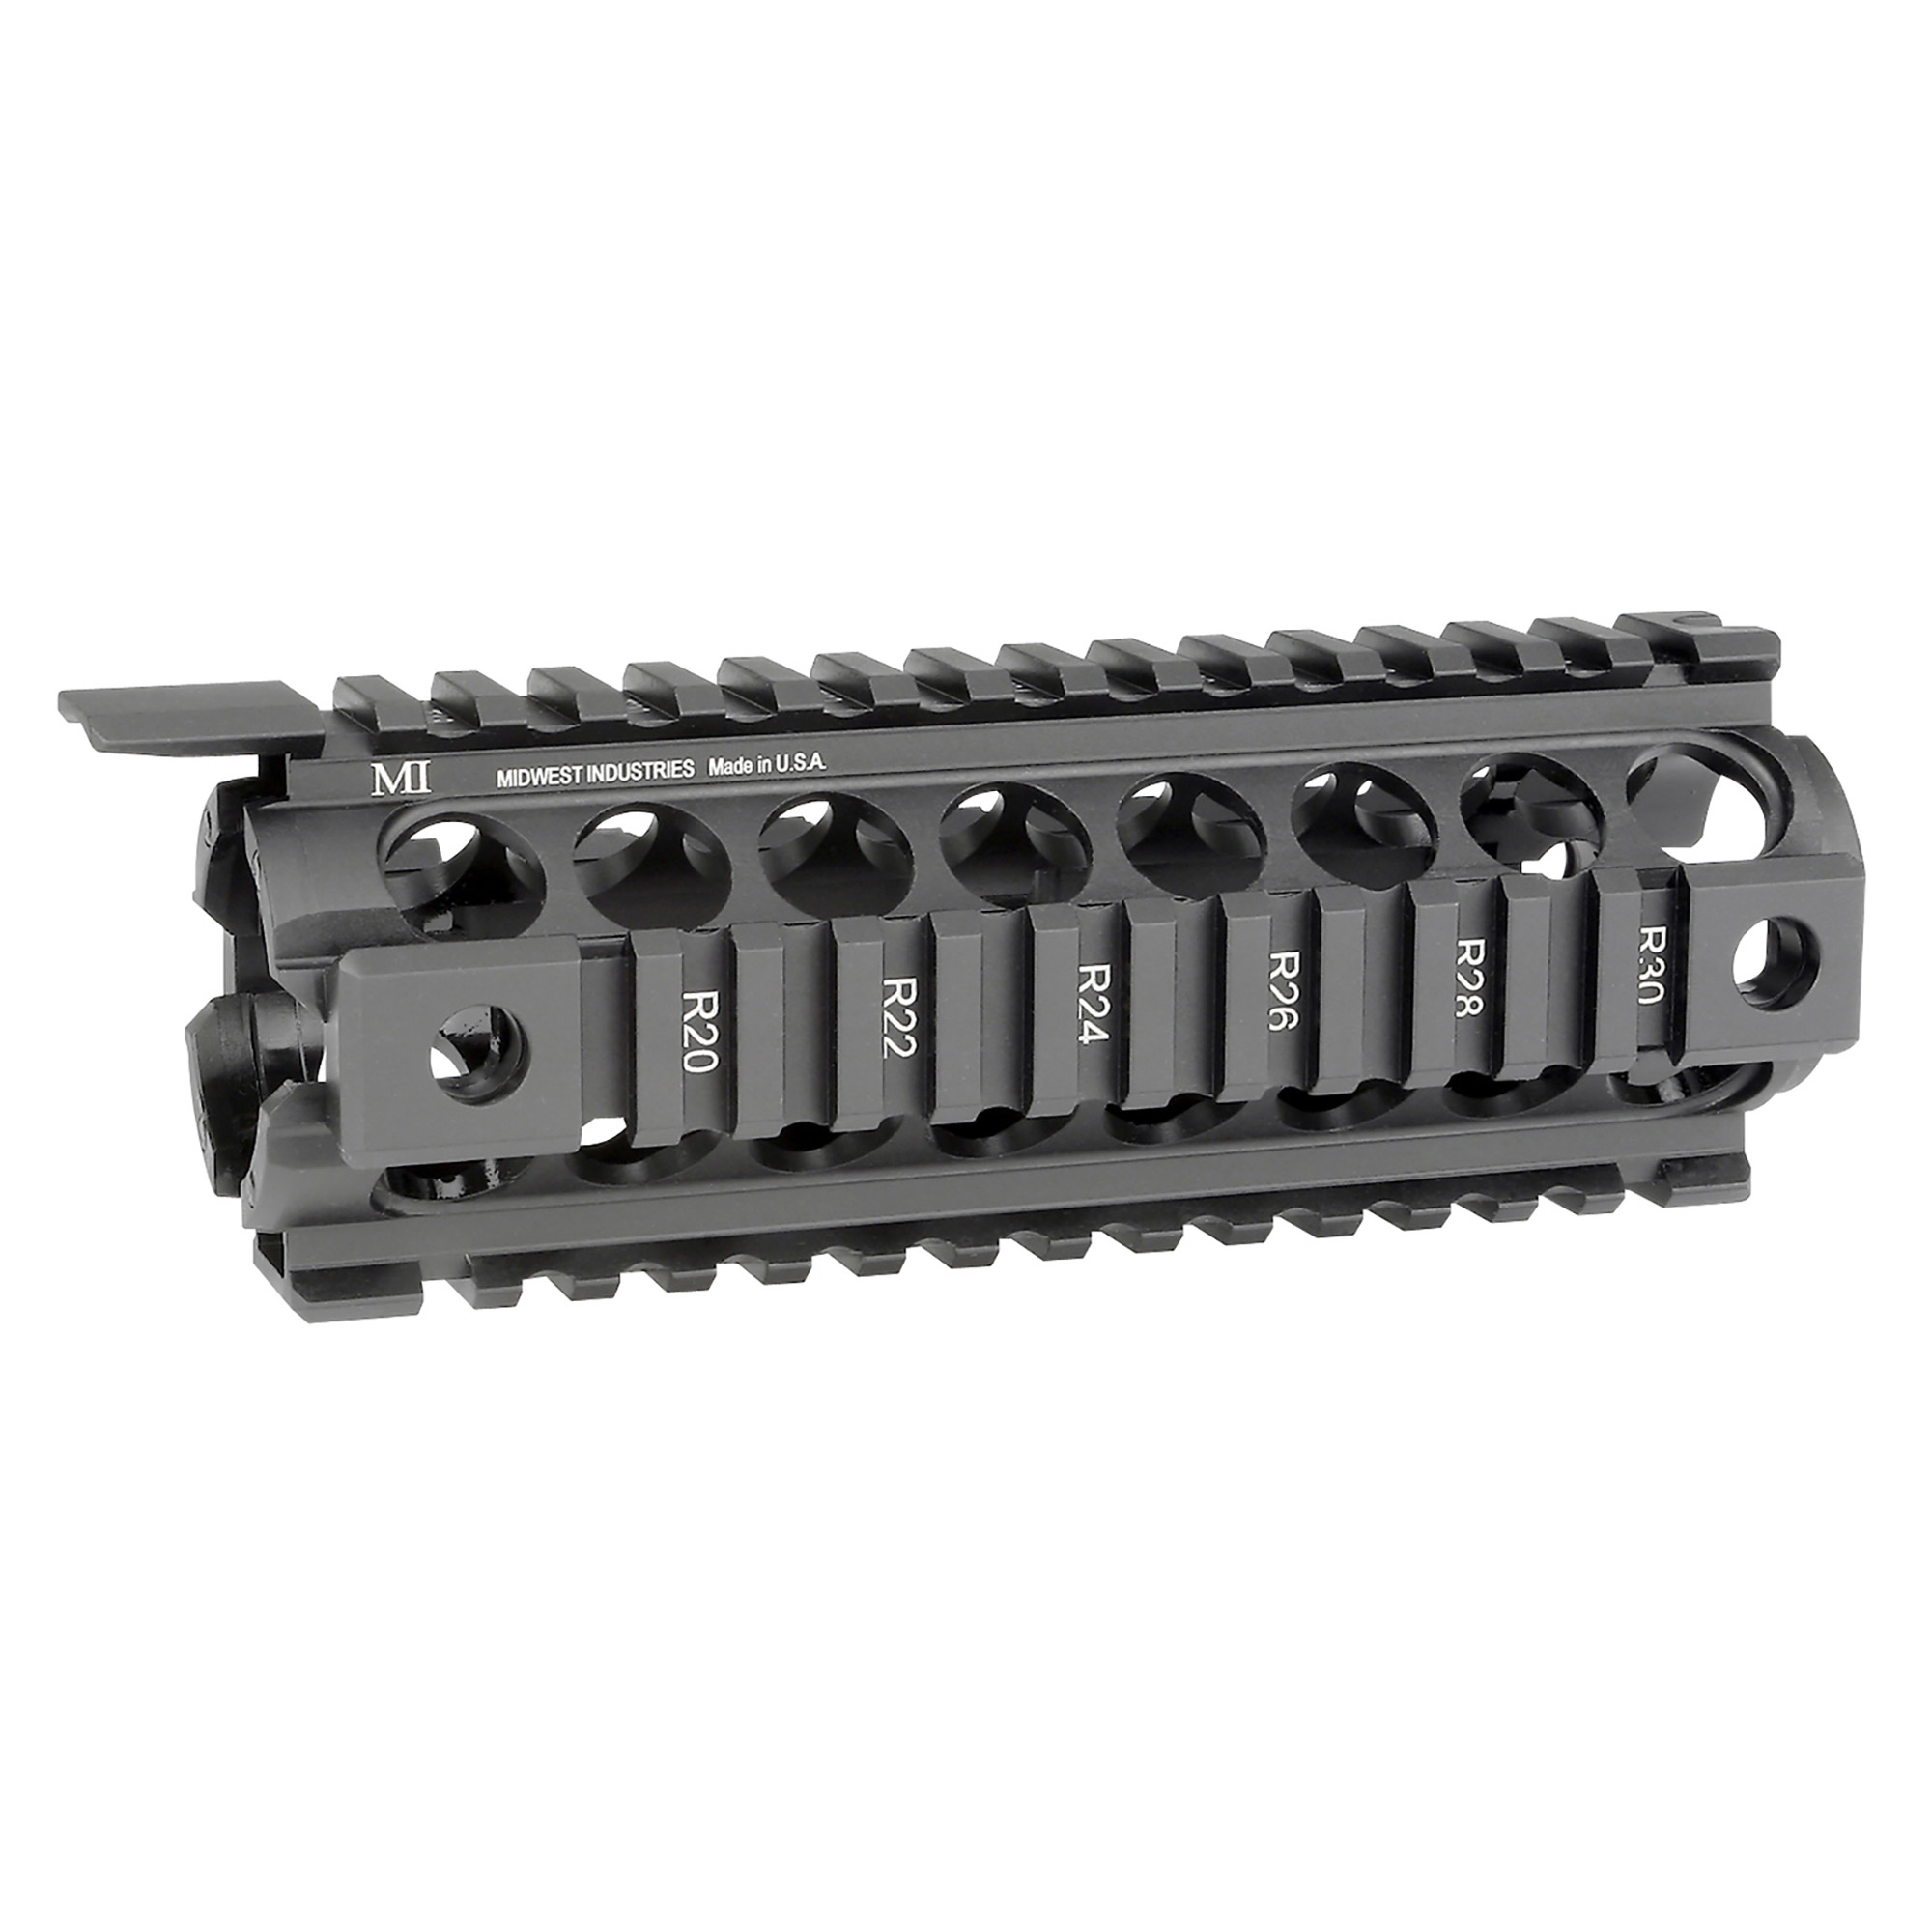 "Midwest Industries Carbine Length MI Gen2 Two Piece Drop-In-Handguard installs like factory plastic handguards. Midwest Industries is a proven leader in the firearm industry. Made in America"" focusing on the small details to make your rifle platform better. The addition of their drop in handguard to your rifle platform creates the rail space you need to add your accessories. It has Gen2 design with four anti-rotation QD sockets for push button swivels. It is constructed from 6061 aluminum hard coat anodized and compatible with most gas piston systems."